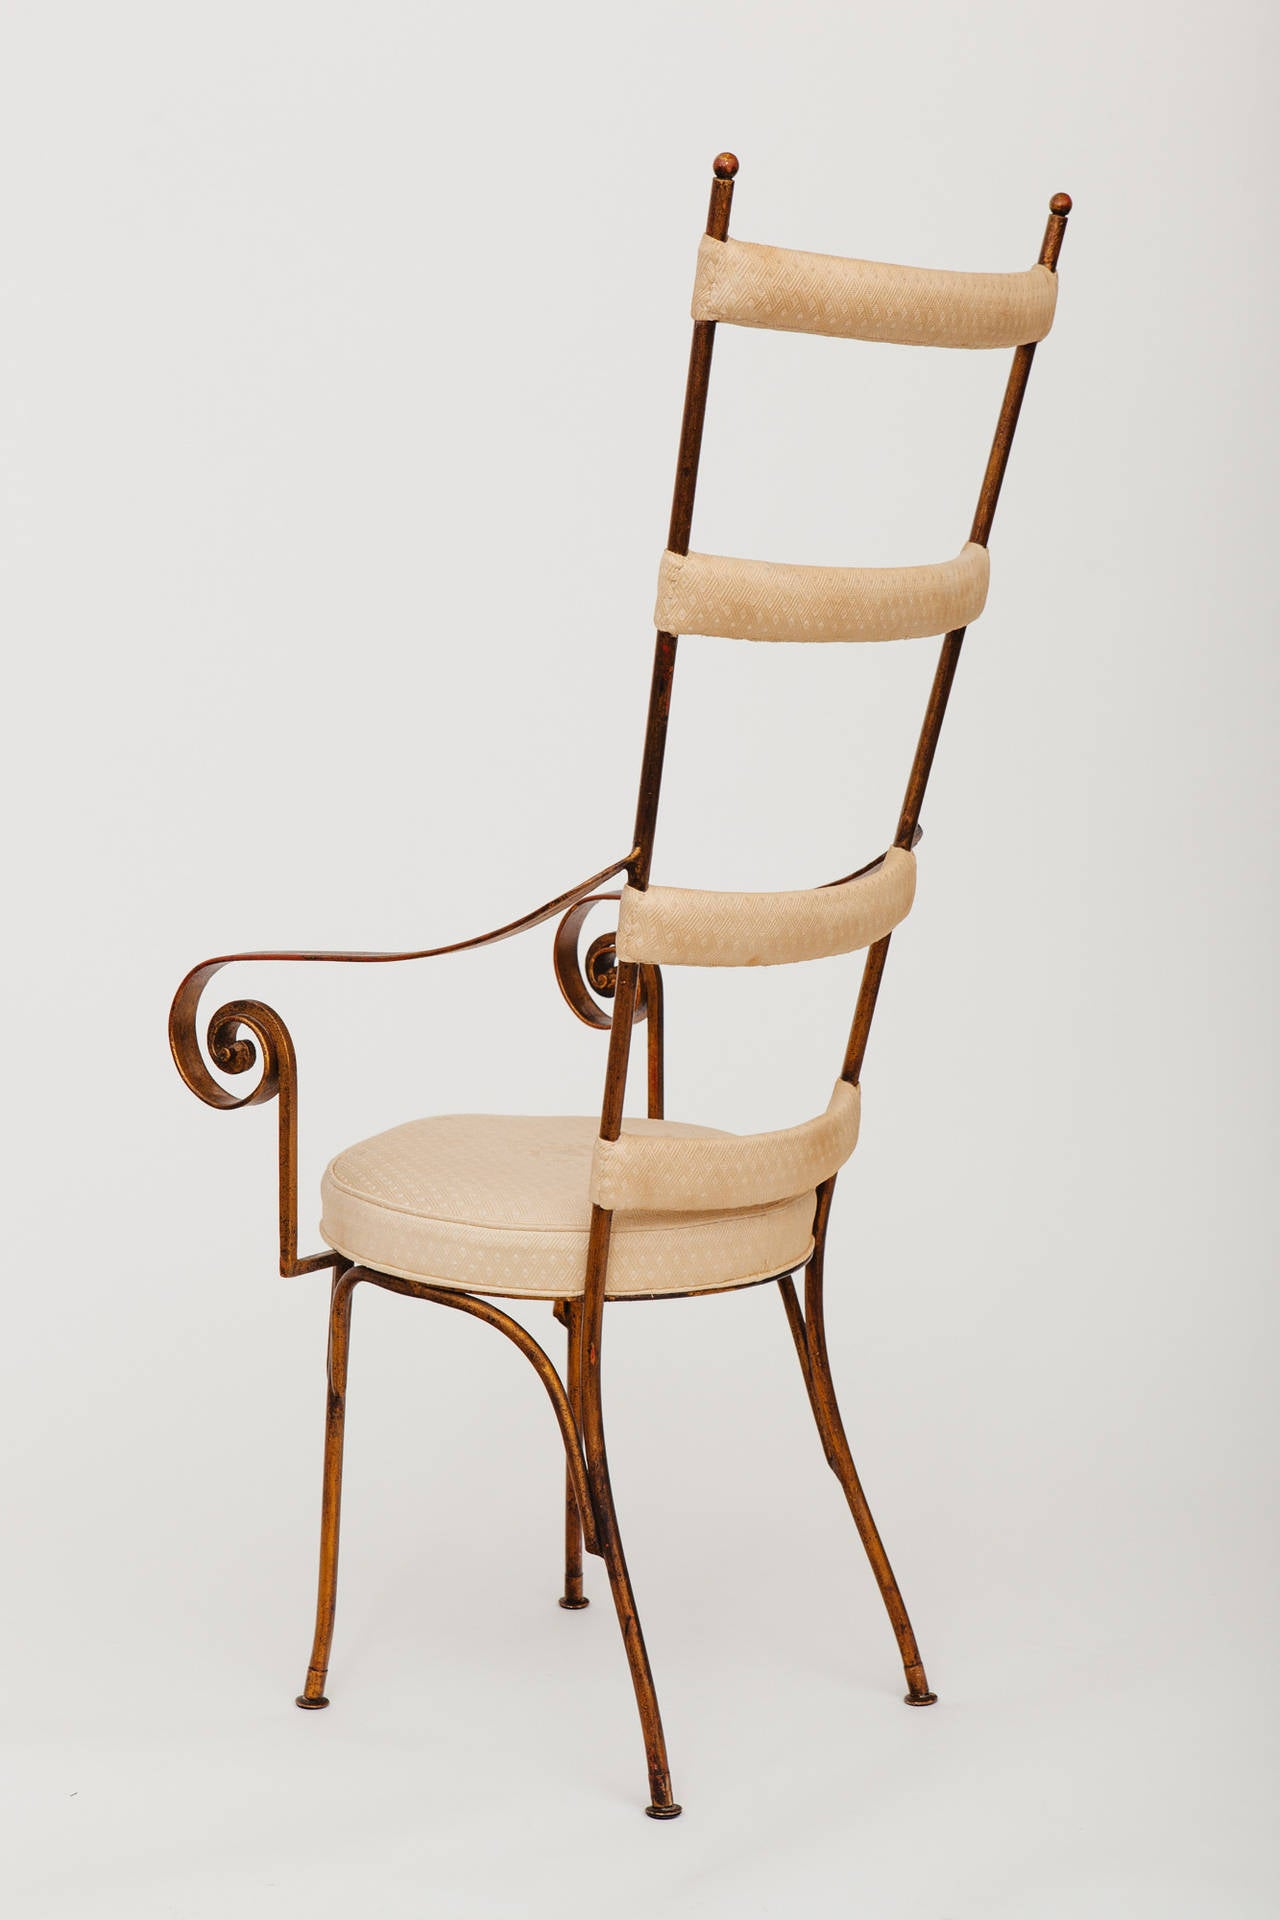 Italian Gilt Metal Ladder Back Chair, circa 1950s In Good Condition For Sale In New York, NY